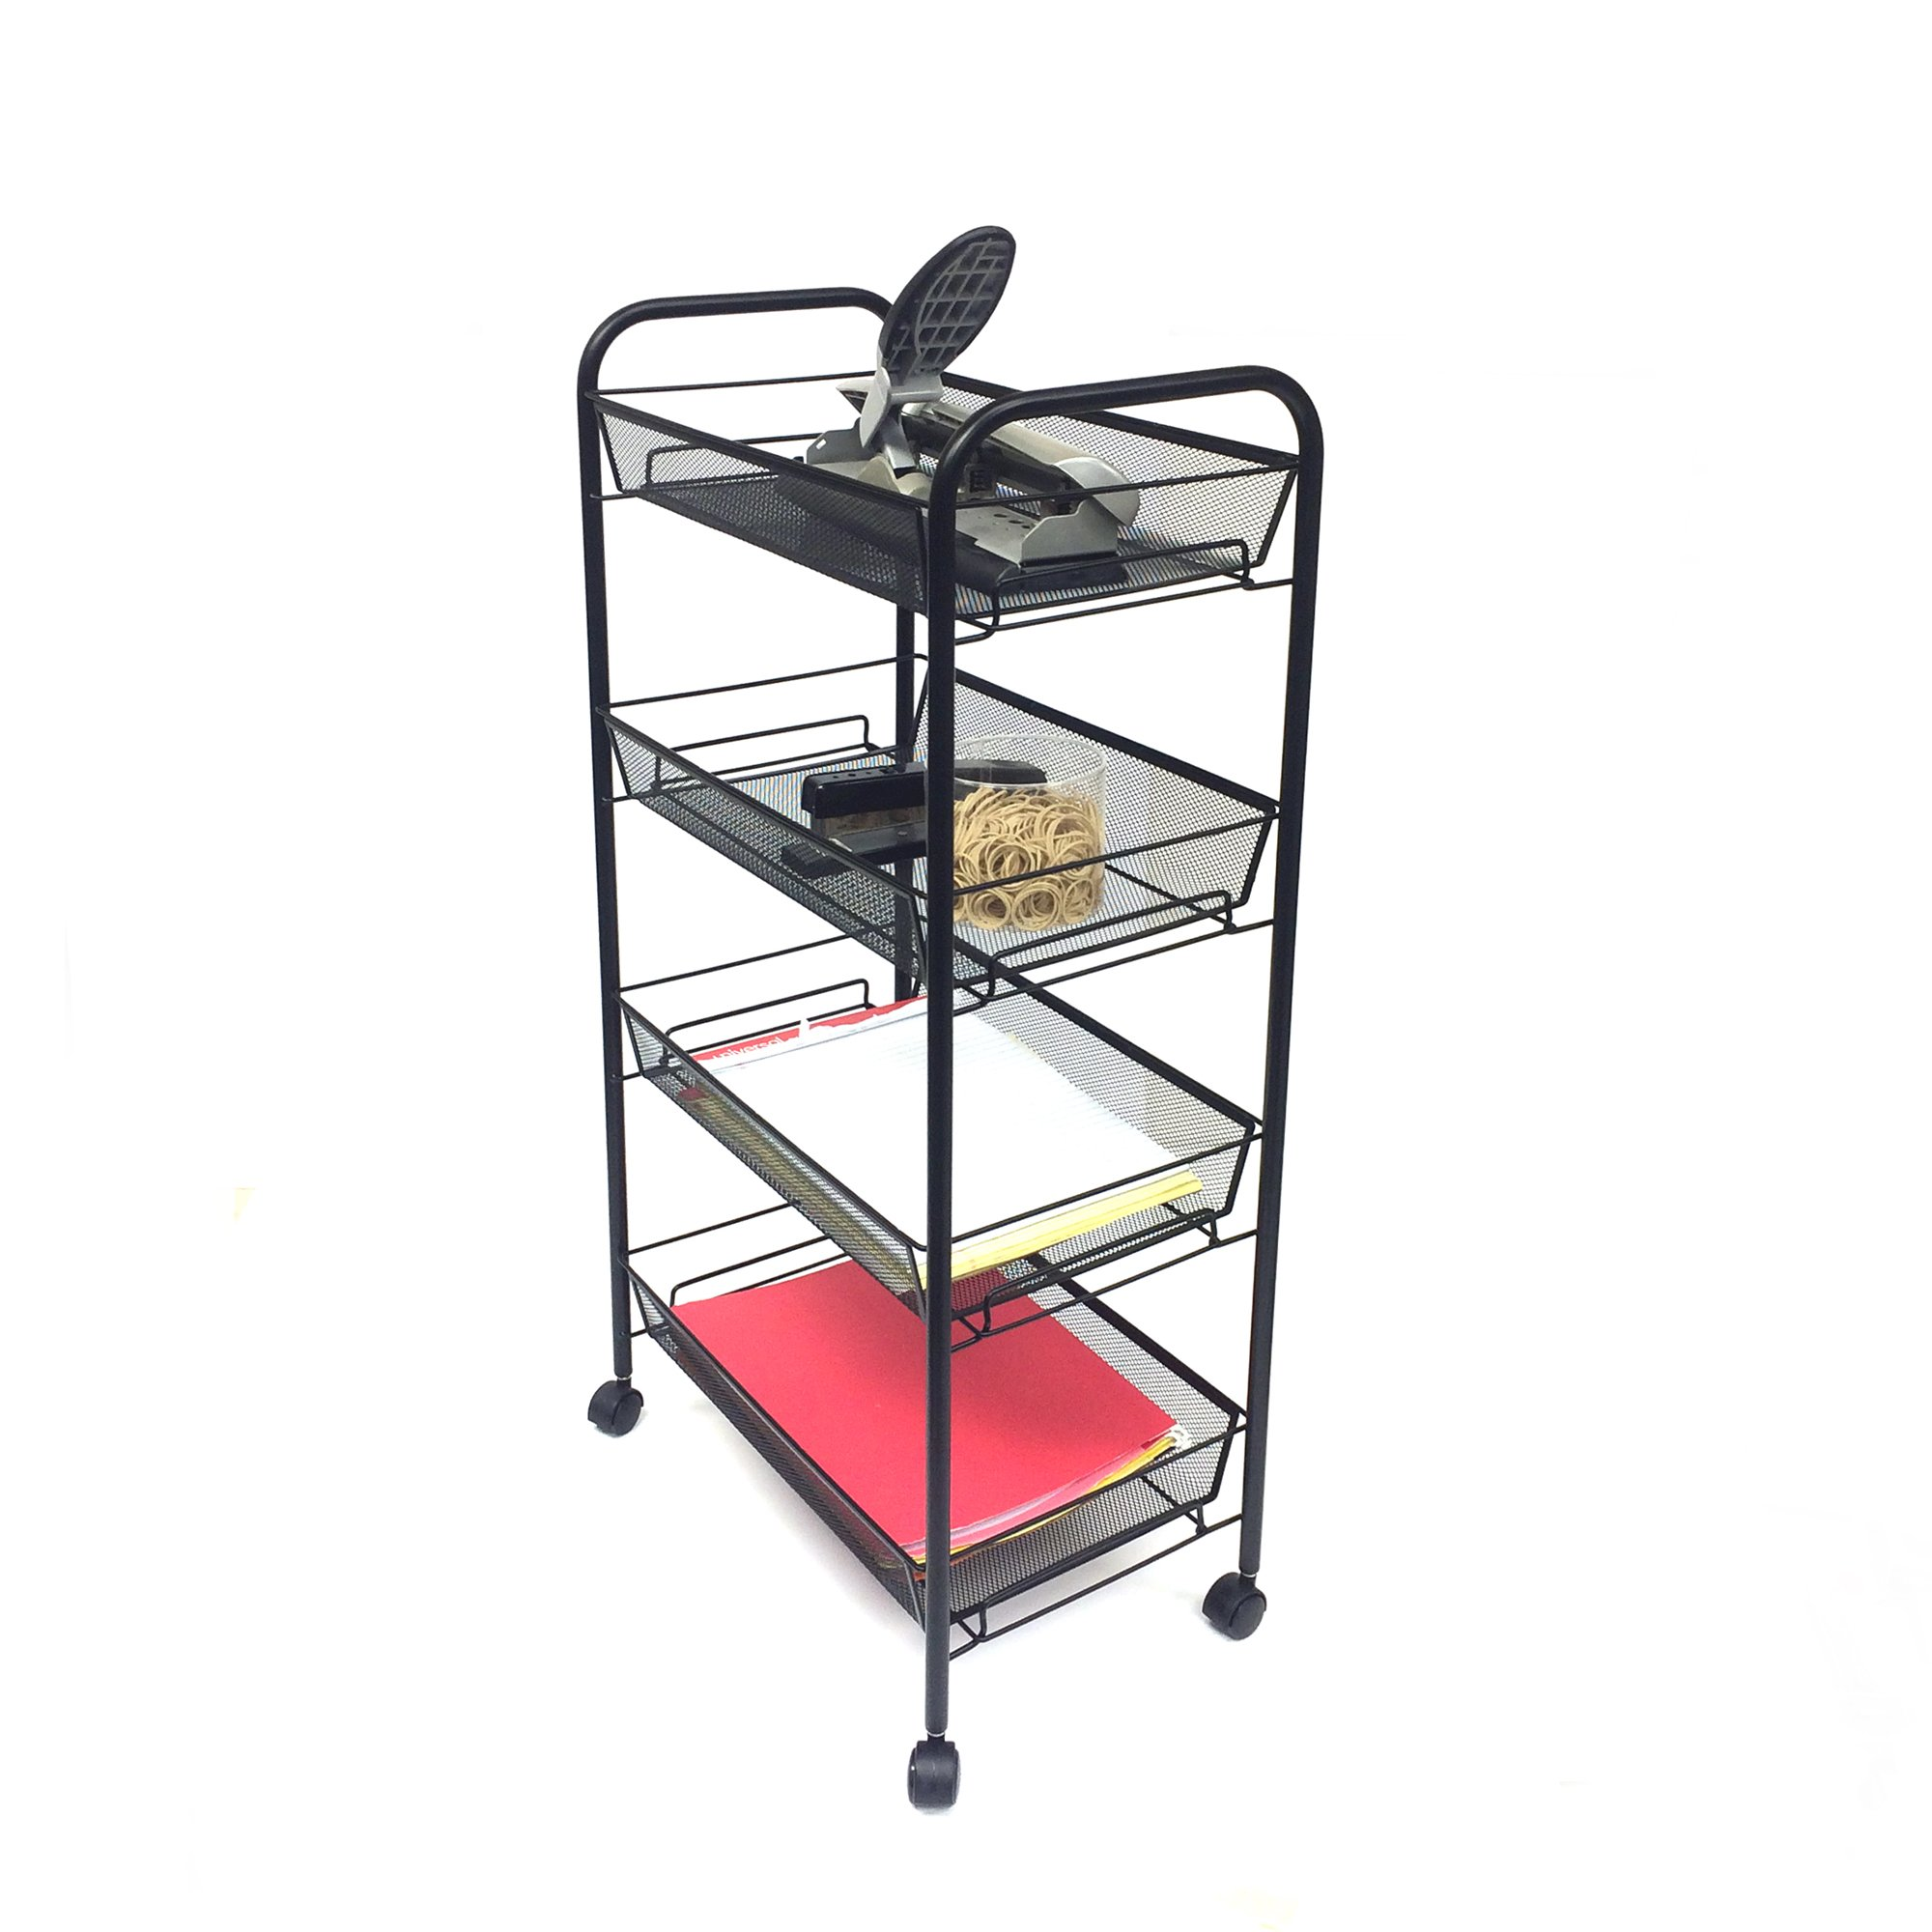 Mind Reader Metal 4 Tier all-Purpose Utility Cart, Black by Mind Reader (Image #4)